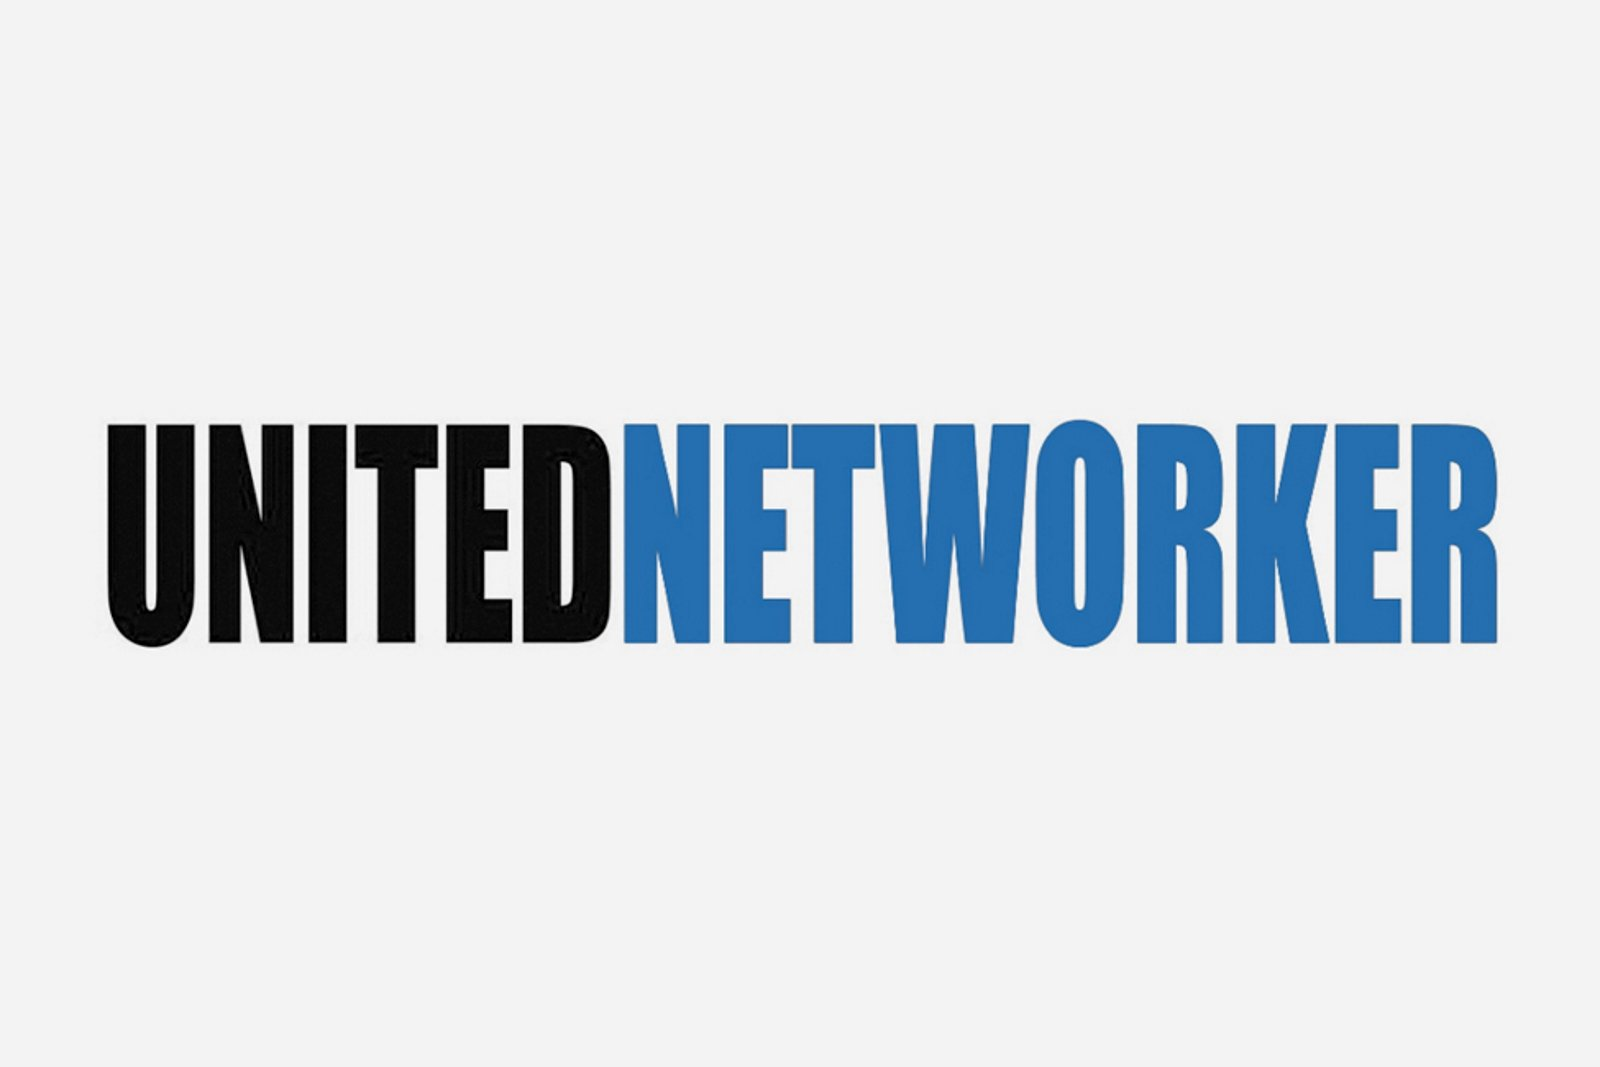 United Networker